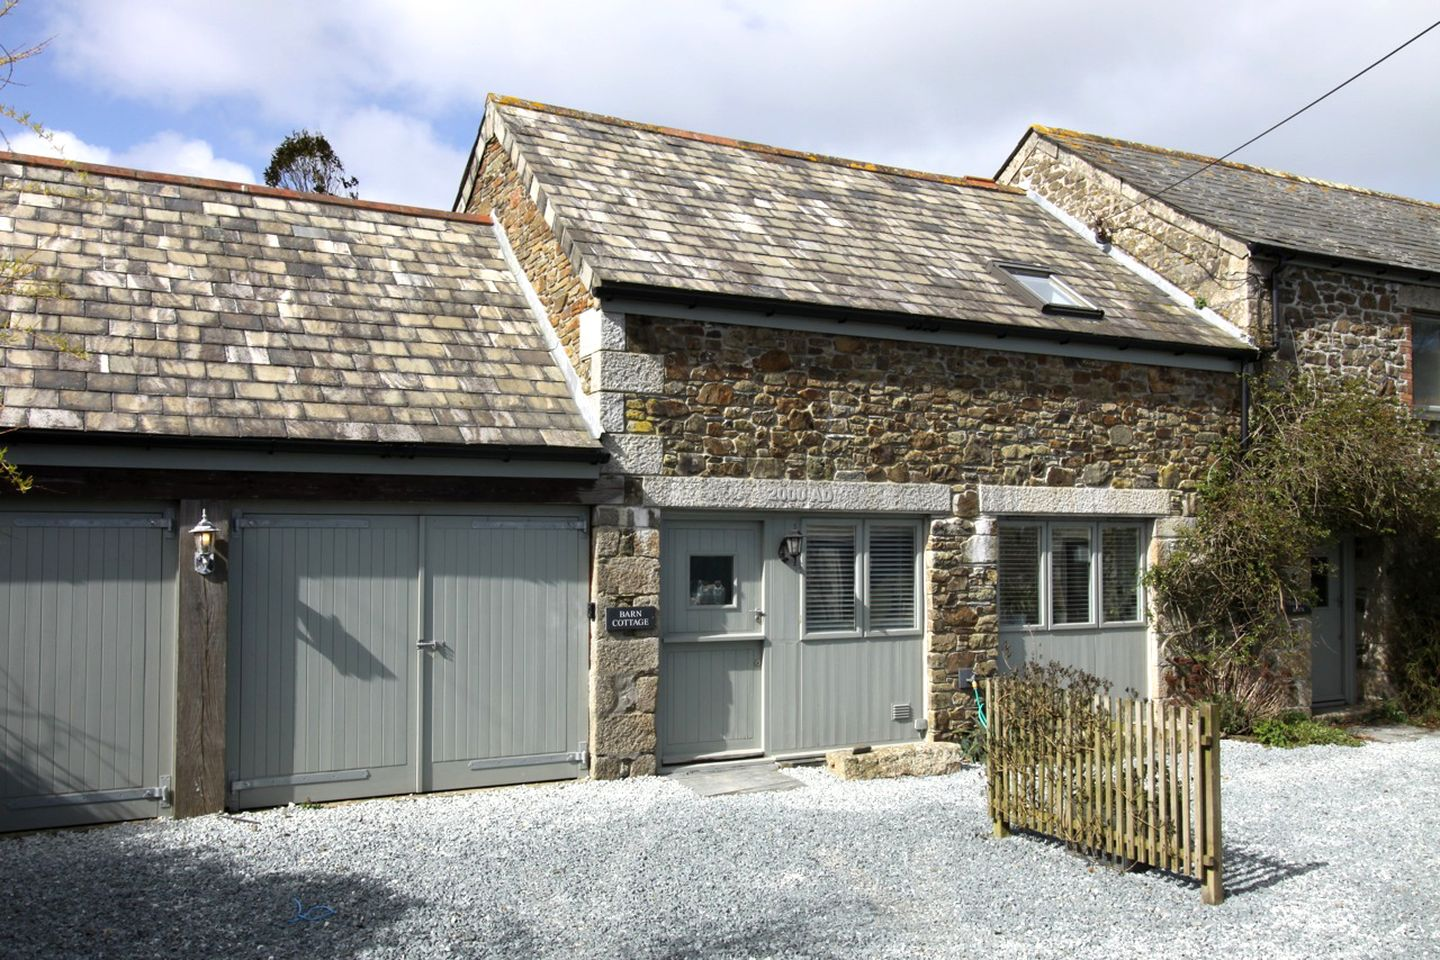 Holiday Cottage Reviews for Barn Cottage - Self Catering Property in Trelights, Cornwall inc Scilly